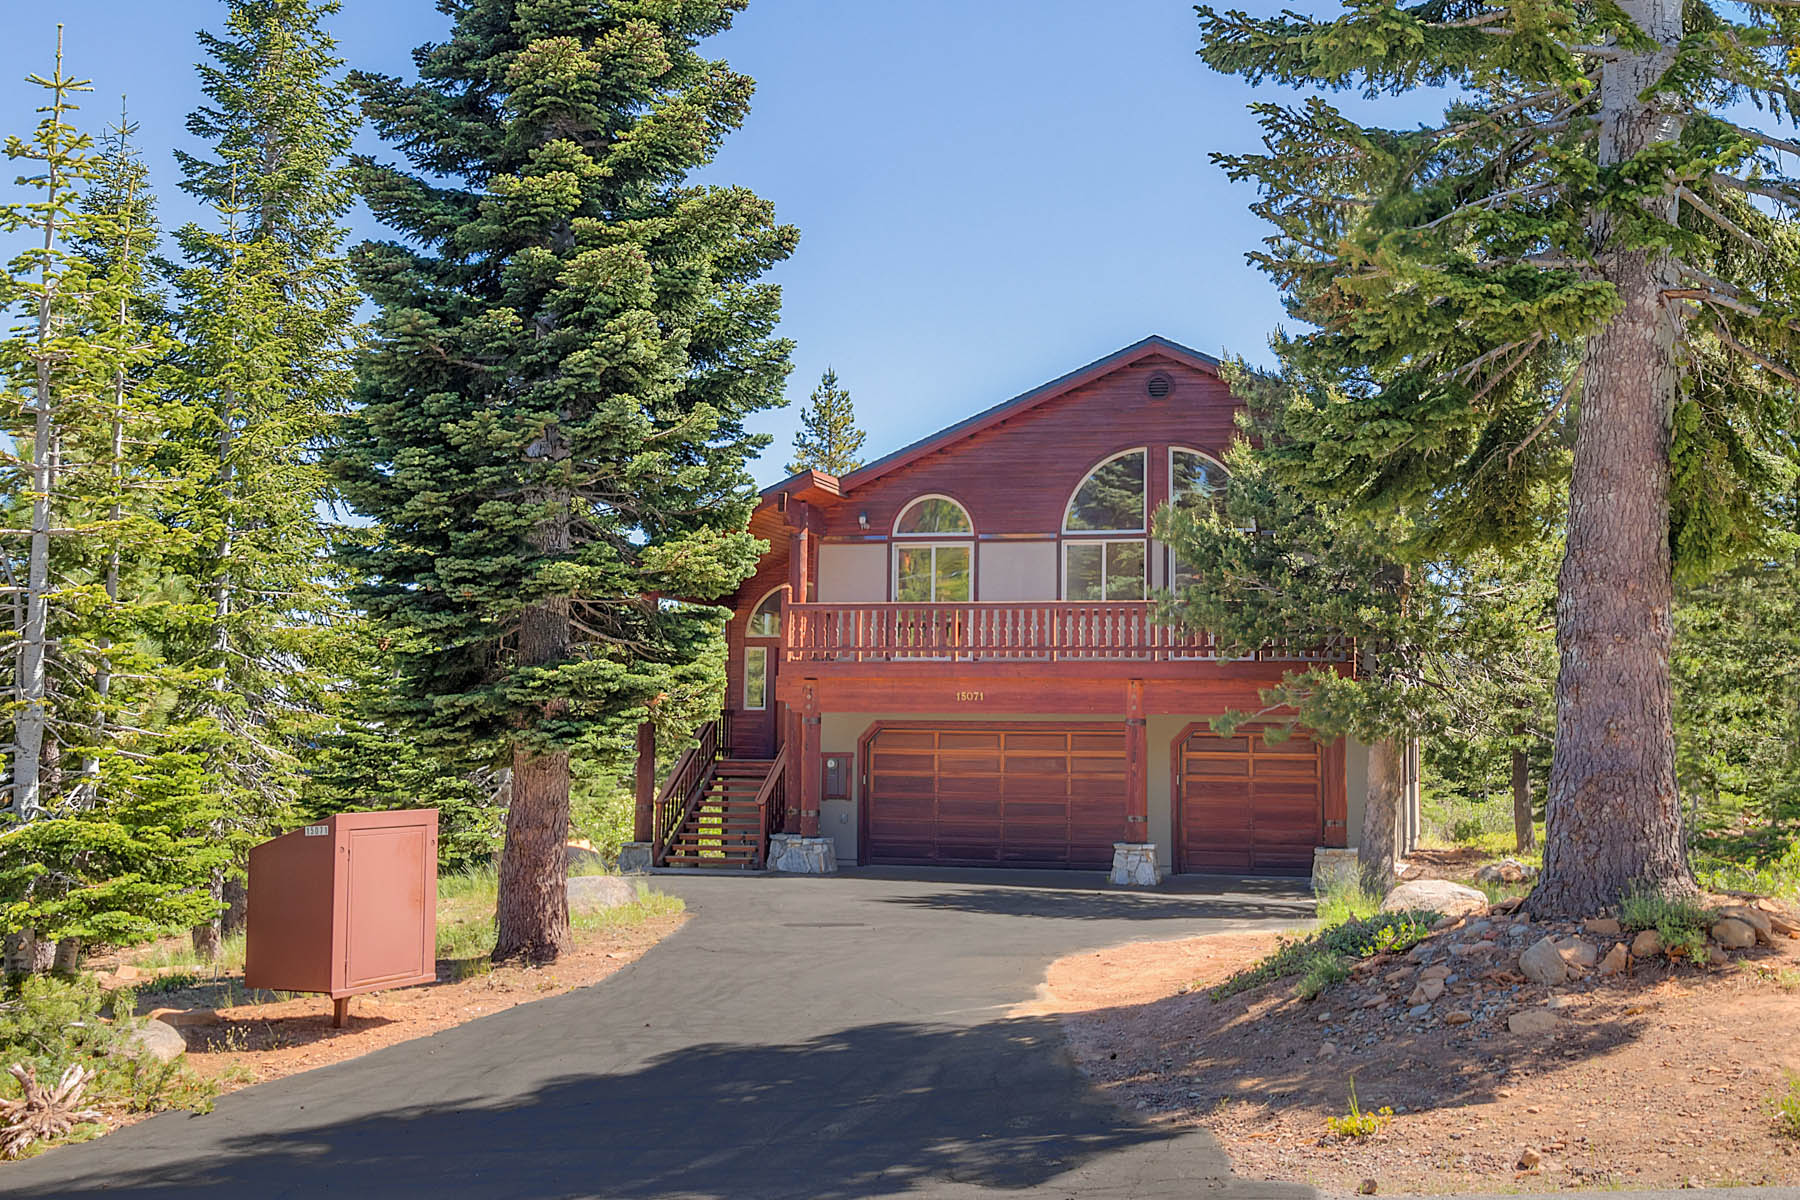 Single Family Home for Active at 15071 Skislope Way, Truckee, CA 15071 Ski Slope Way Truckee, California 96161 United States